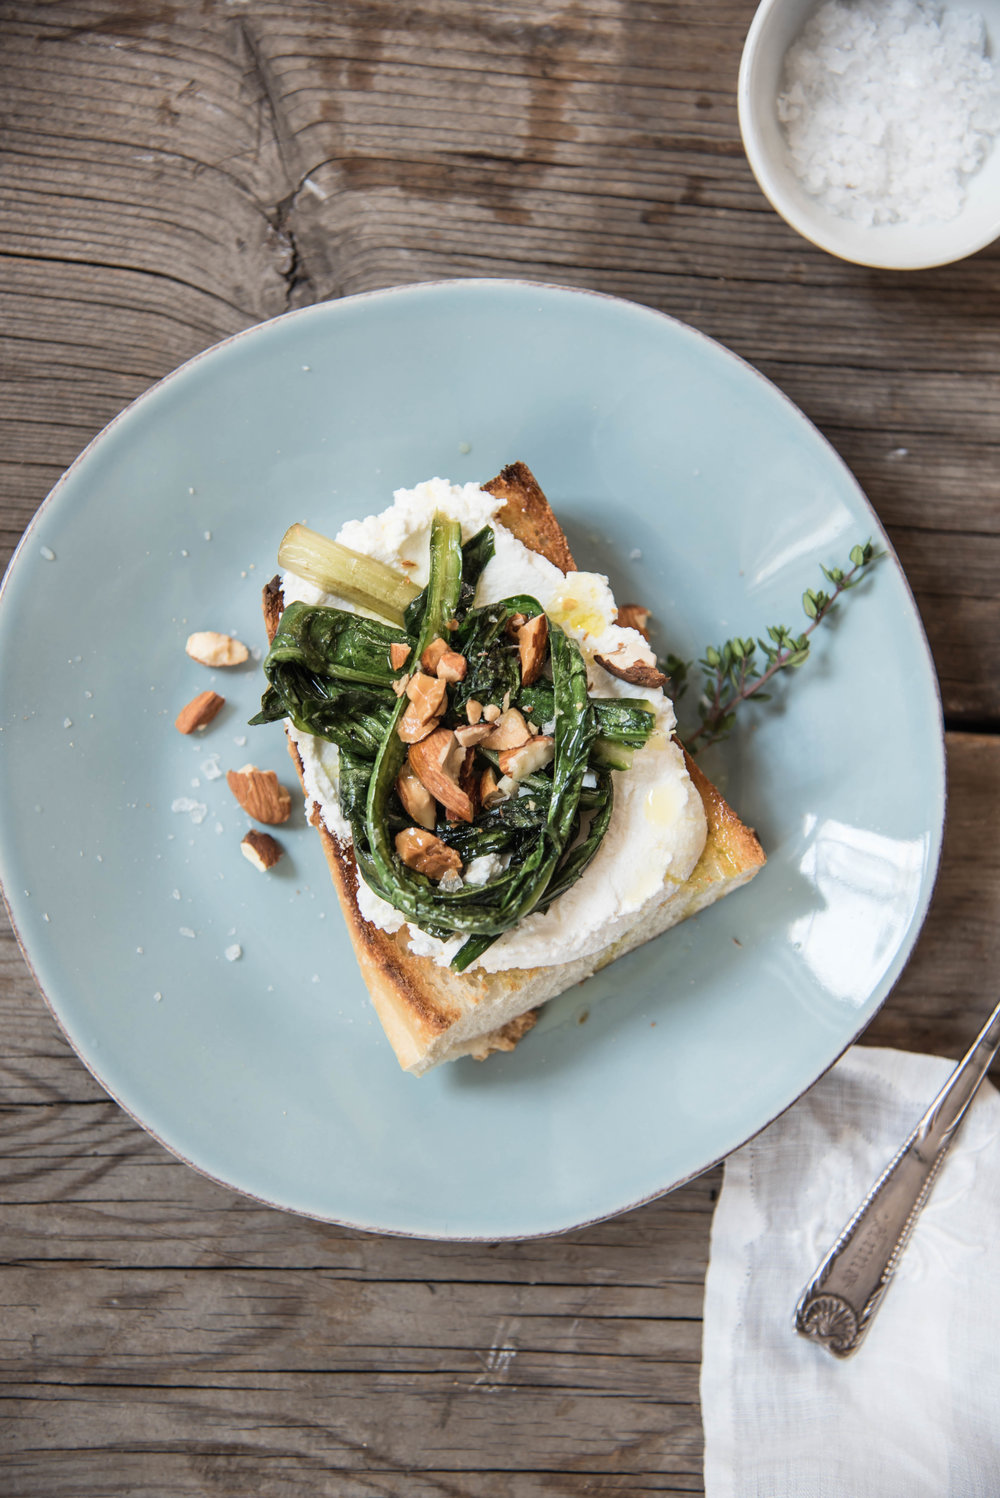 ROSE & IVY Journal Get to Know Your Greens Dandelion _ Dandelion Ricotta Toasts with Almonds